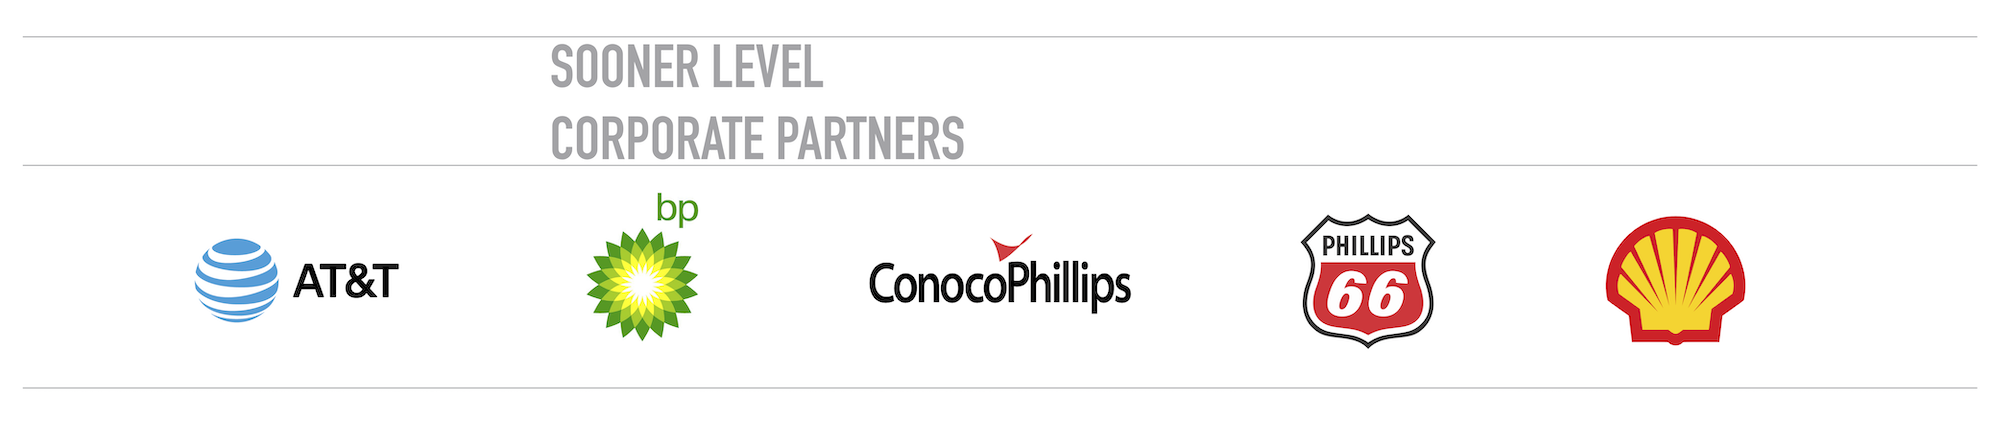 sooner-level-corporate-partners